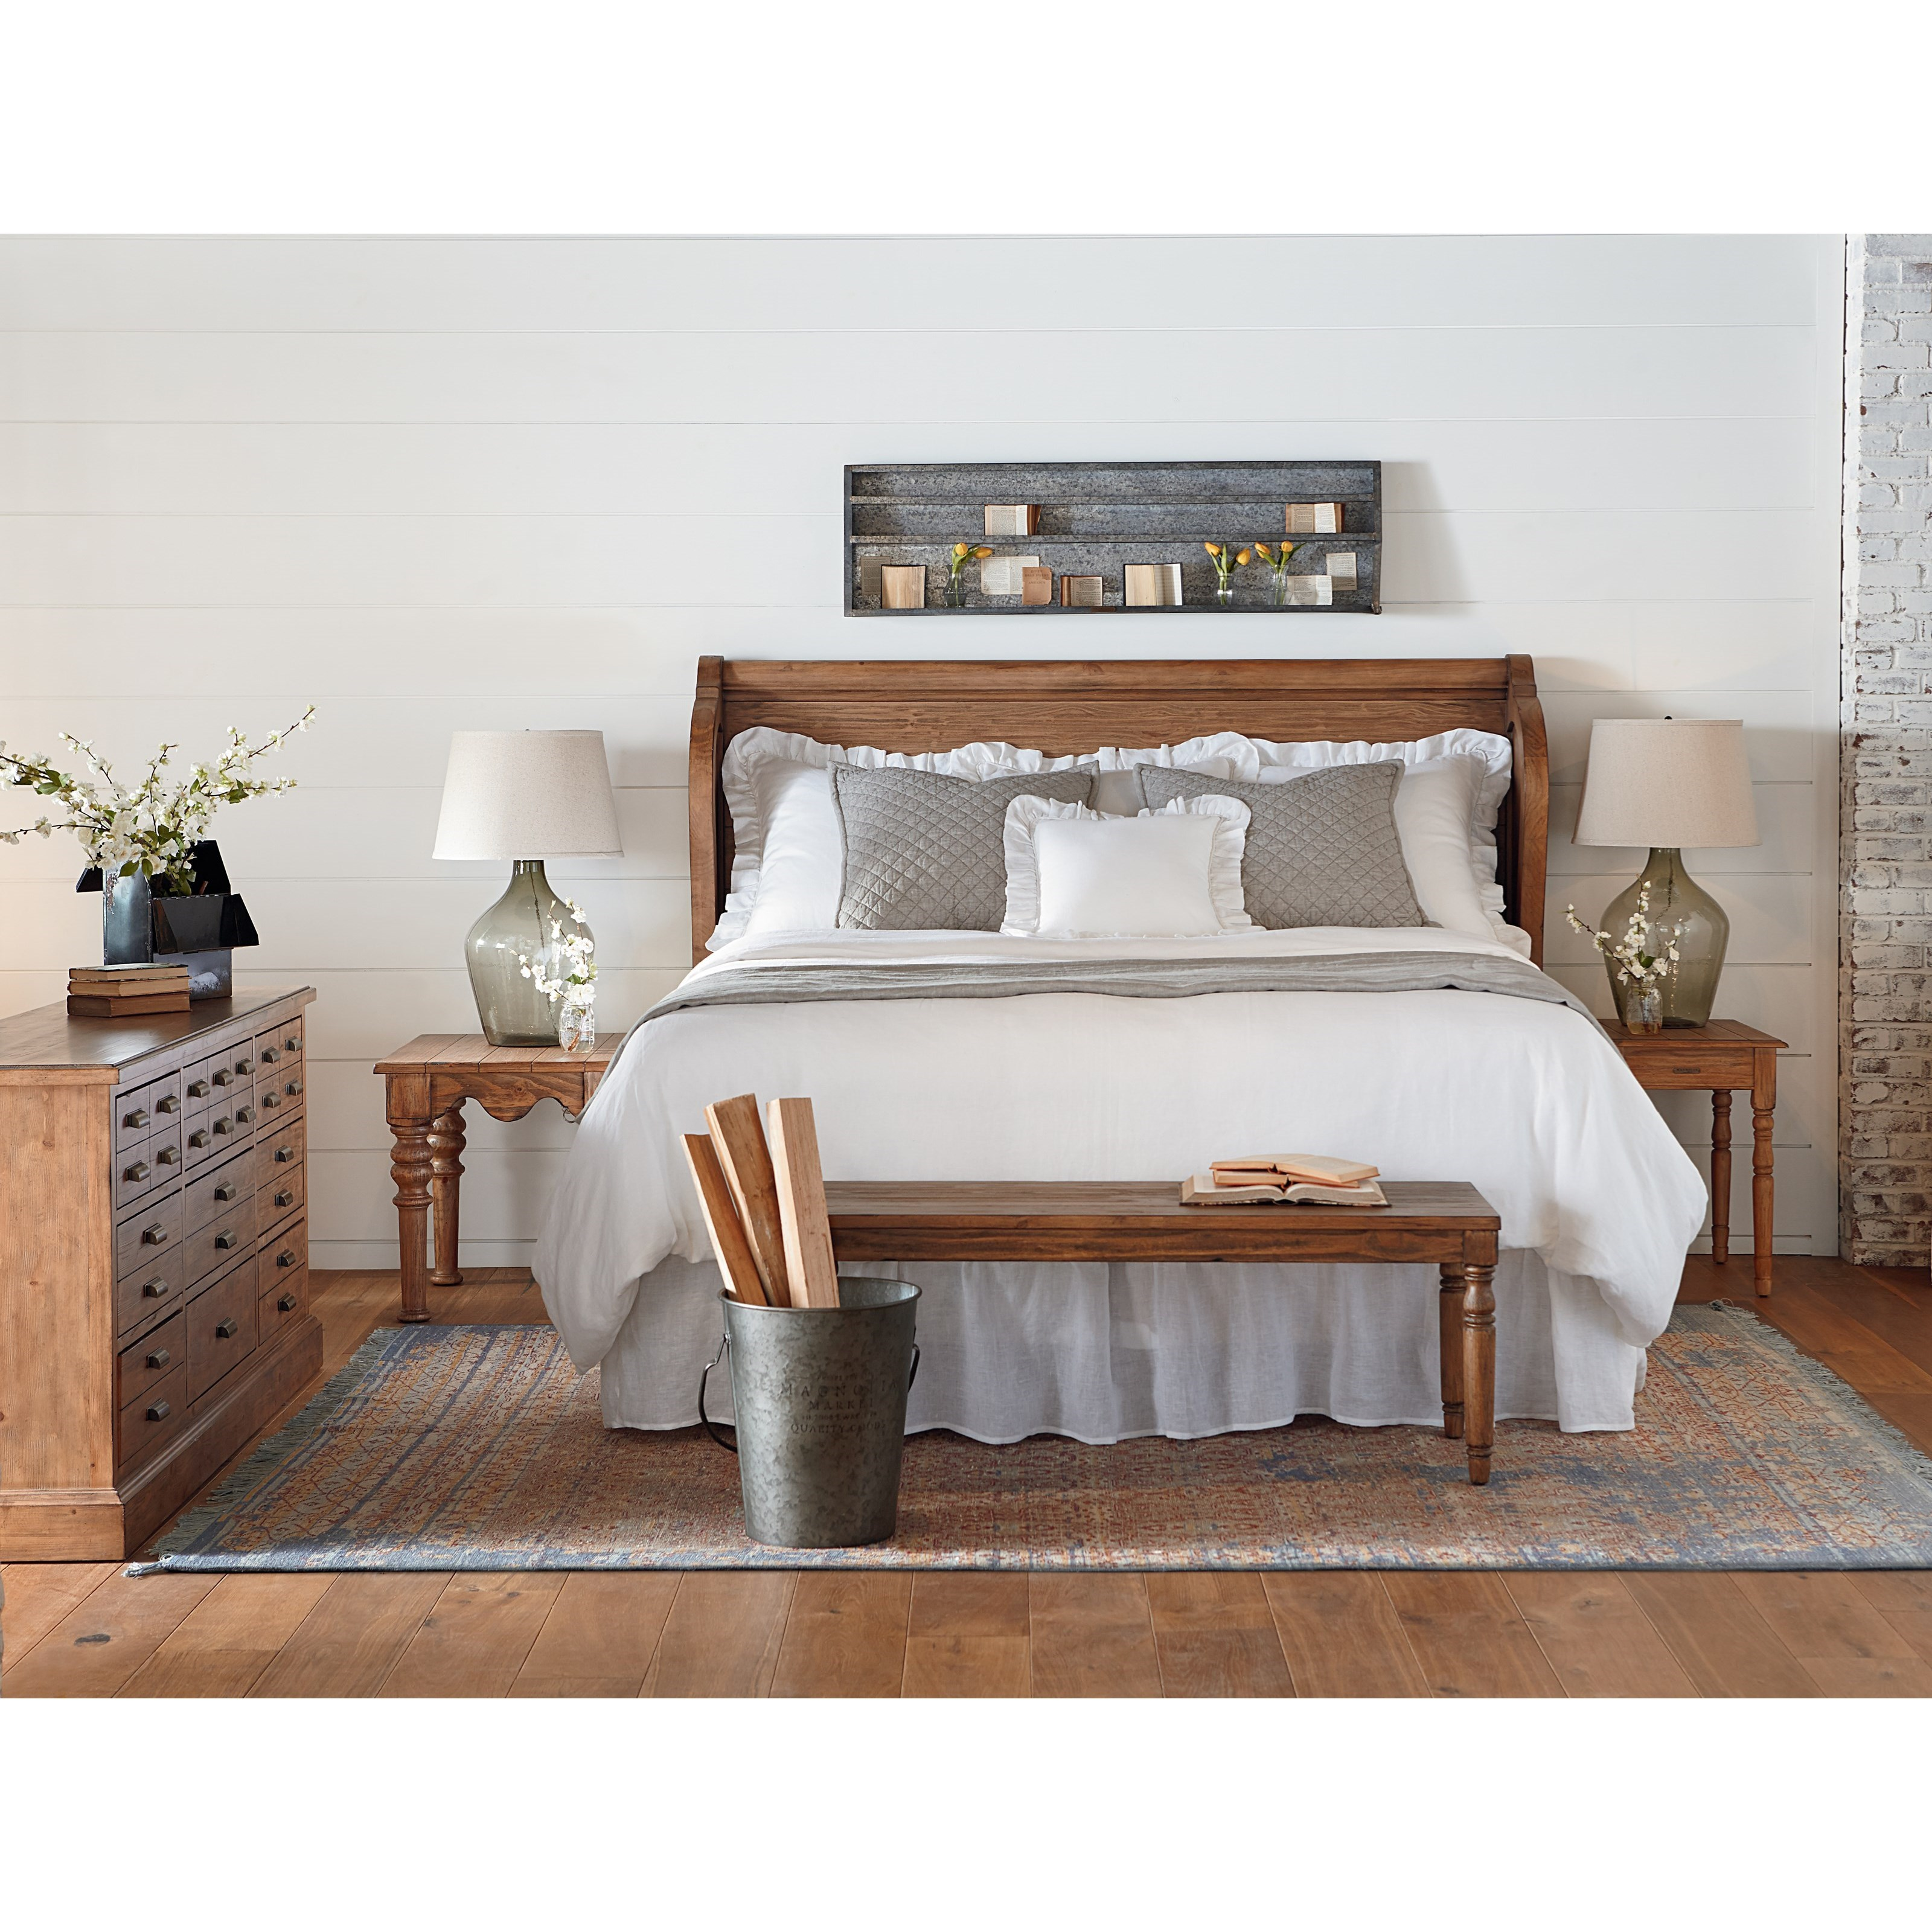 love the bedroom reminds our this end of at pin i but grey bed me bench tint